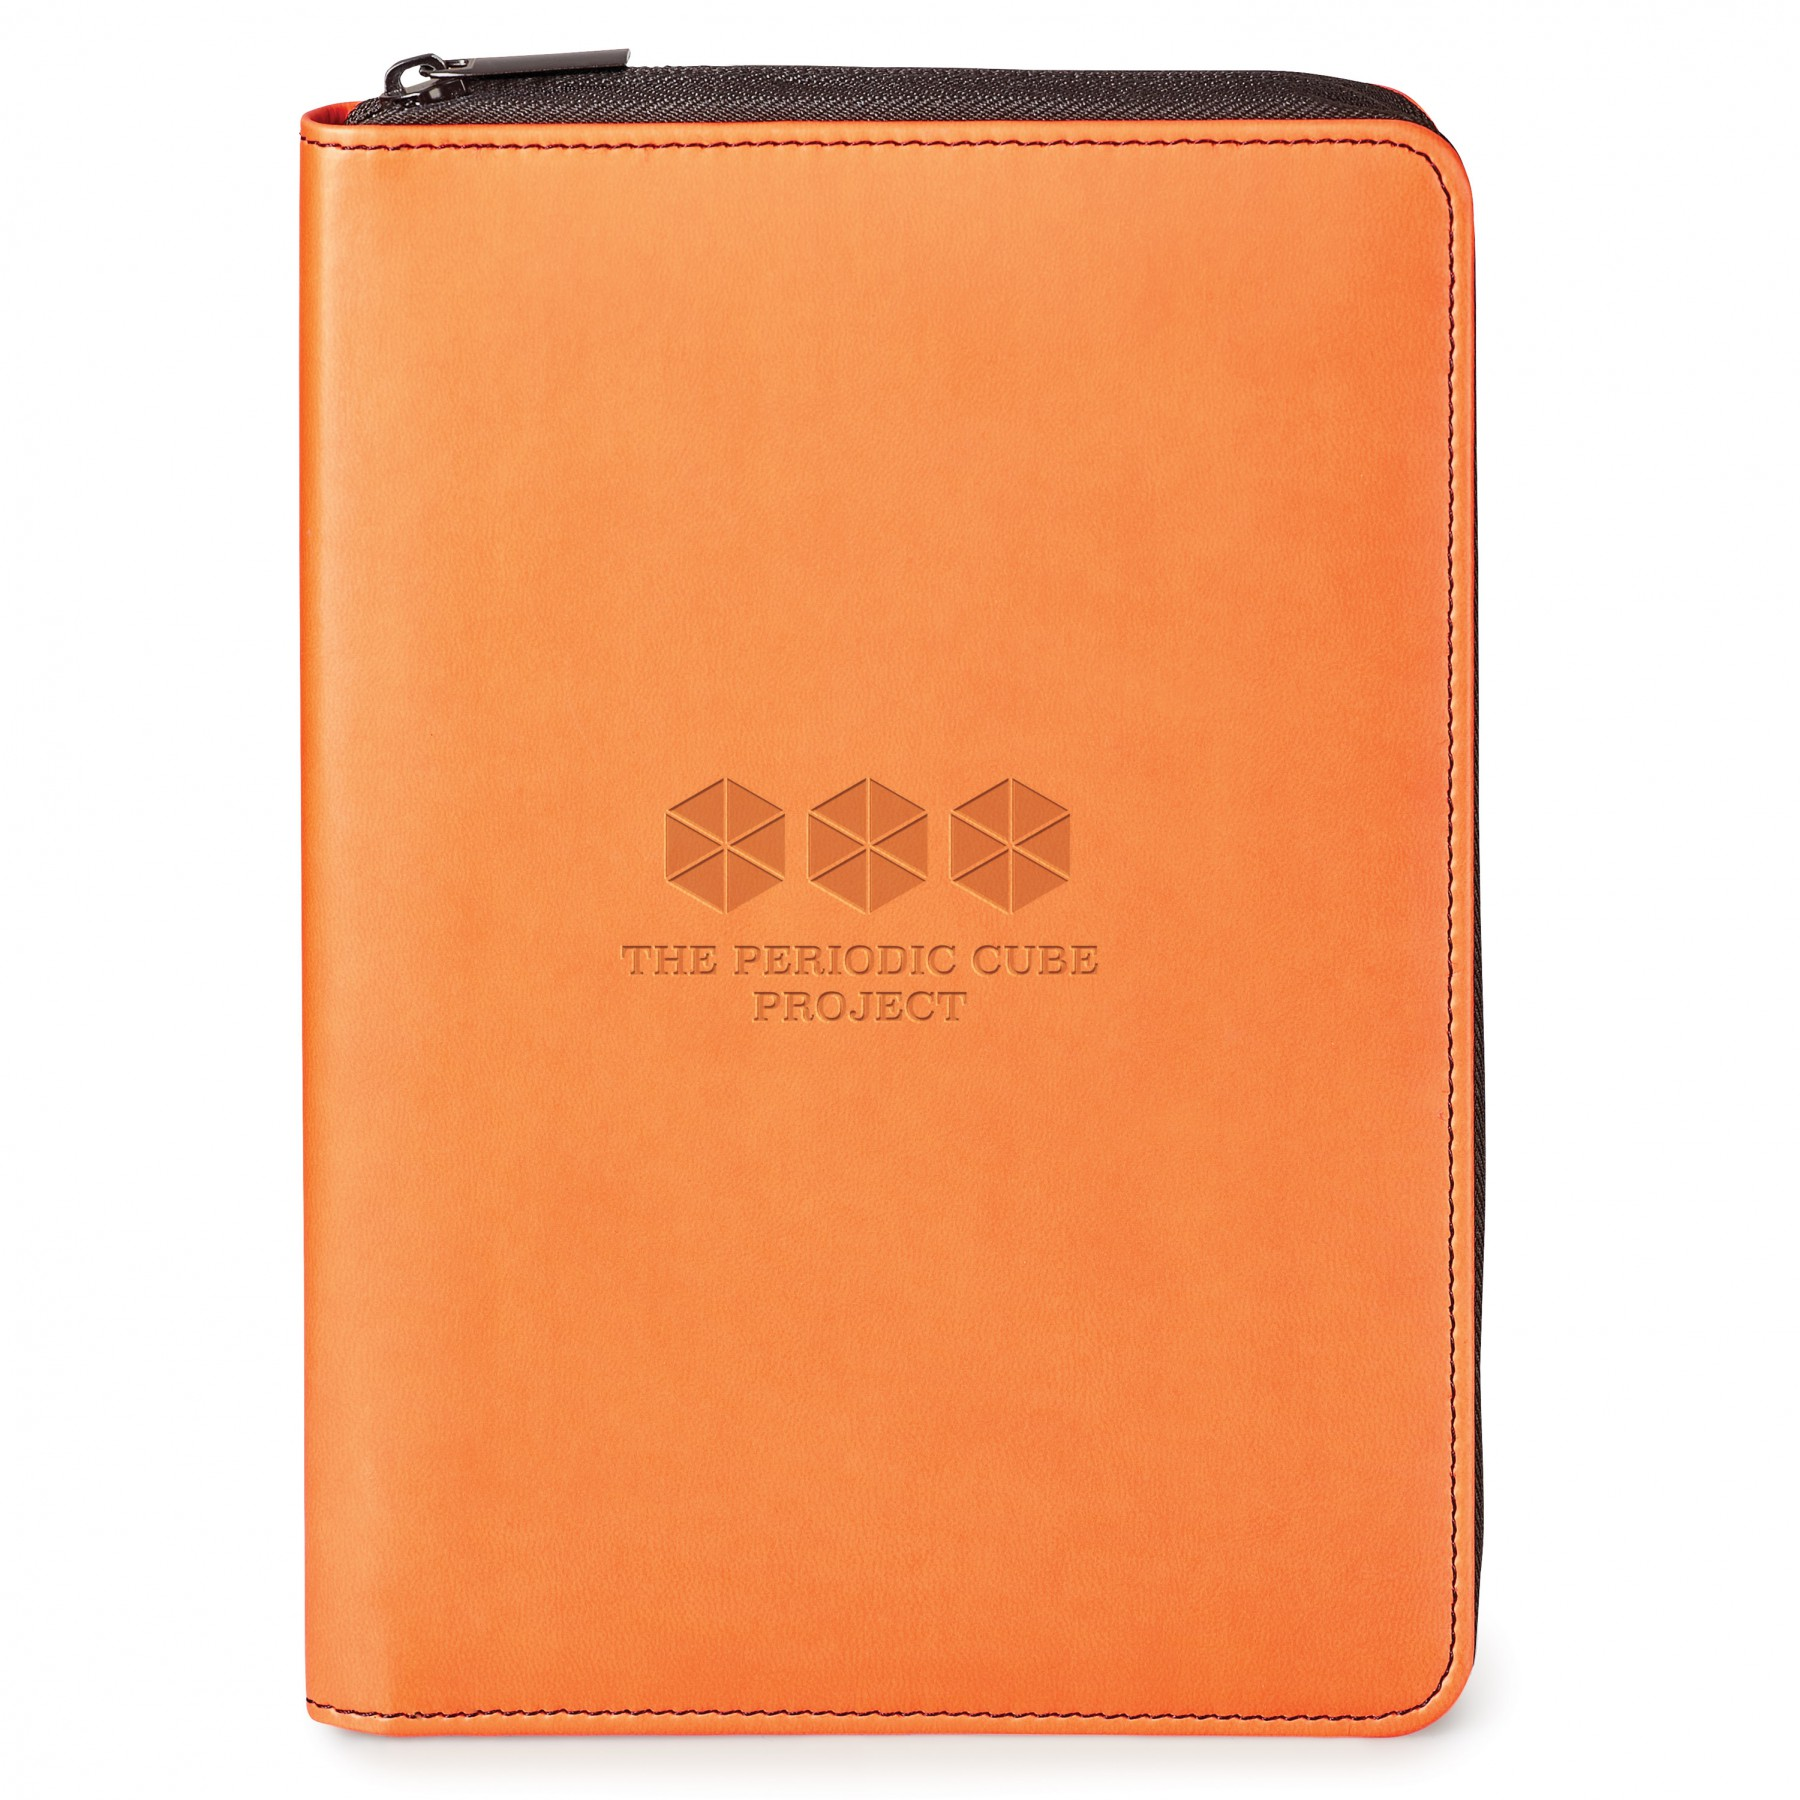 Donald Rfid Refillable Journal, ST3351, Debossed Logo